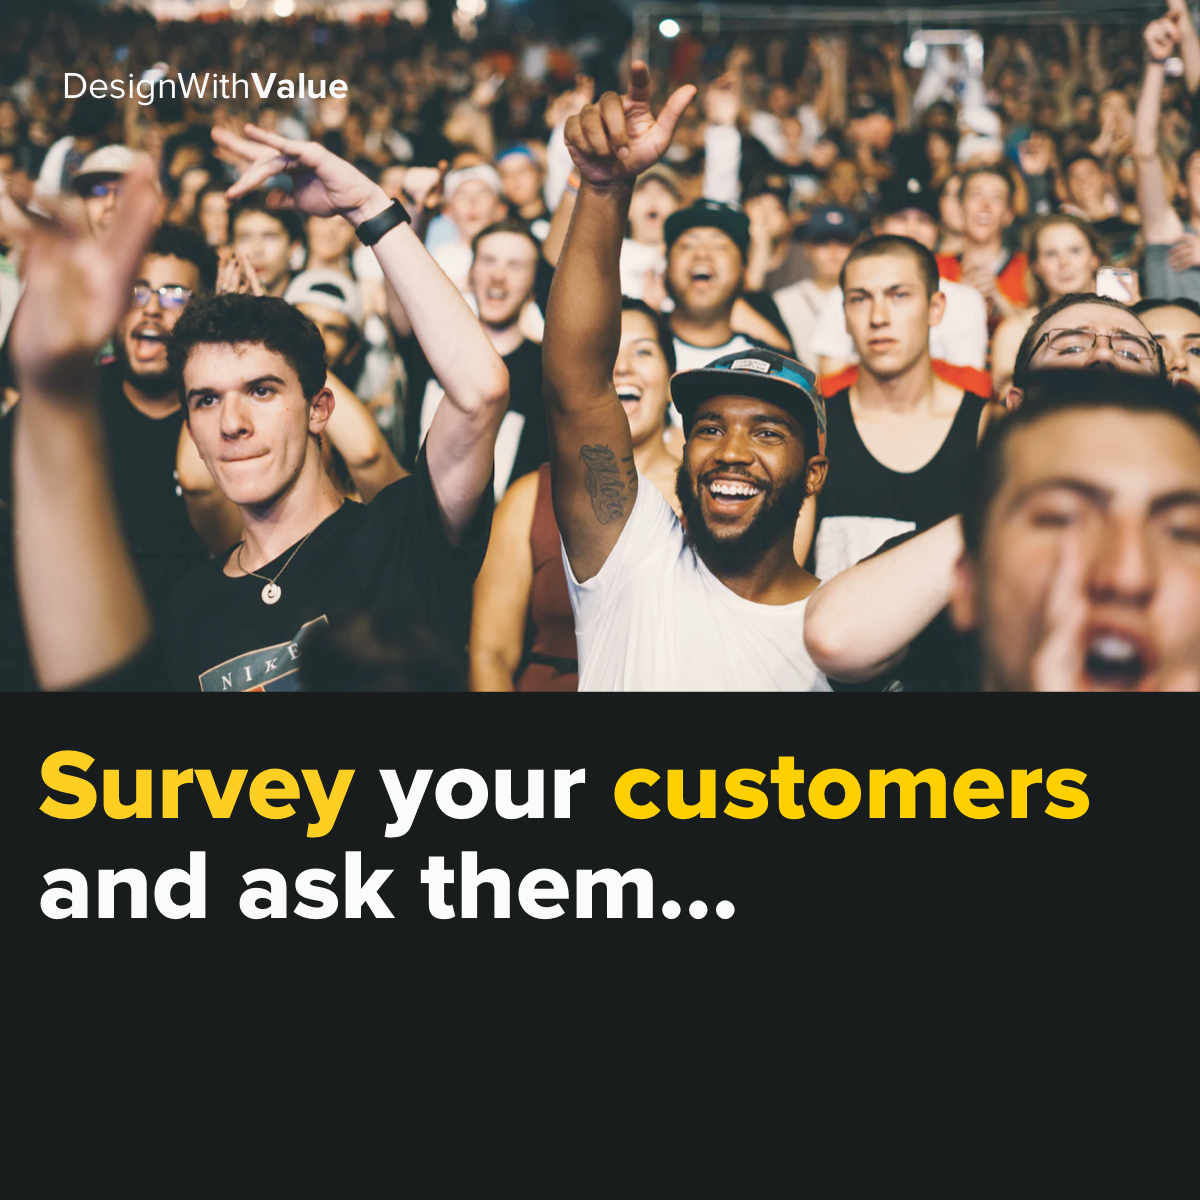 Survey your customers and ask them...